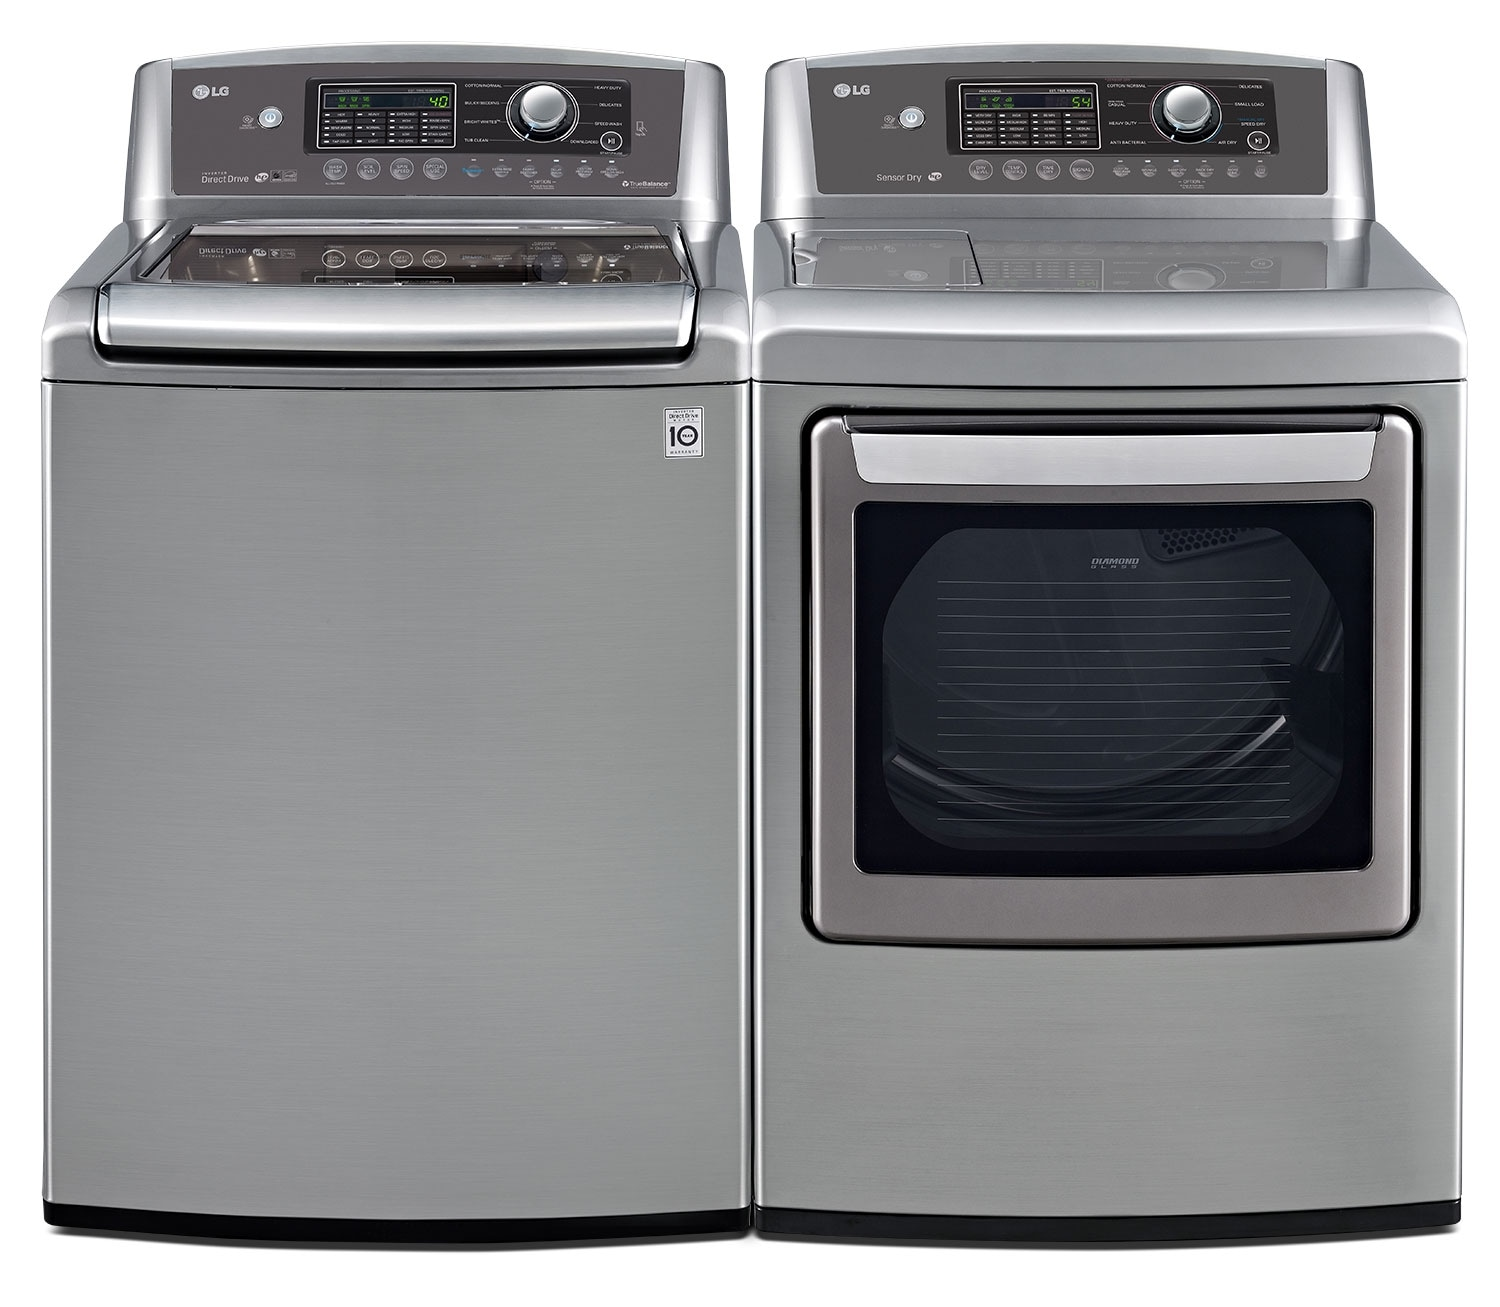 Washers and Dryers - LG 5.6 Cu. Ft. High-Efficiency Top-Load Washer and 7.3 Cu. Ft. Electric Dryer - Graphite Steel